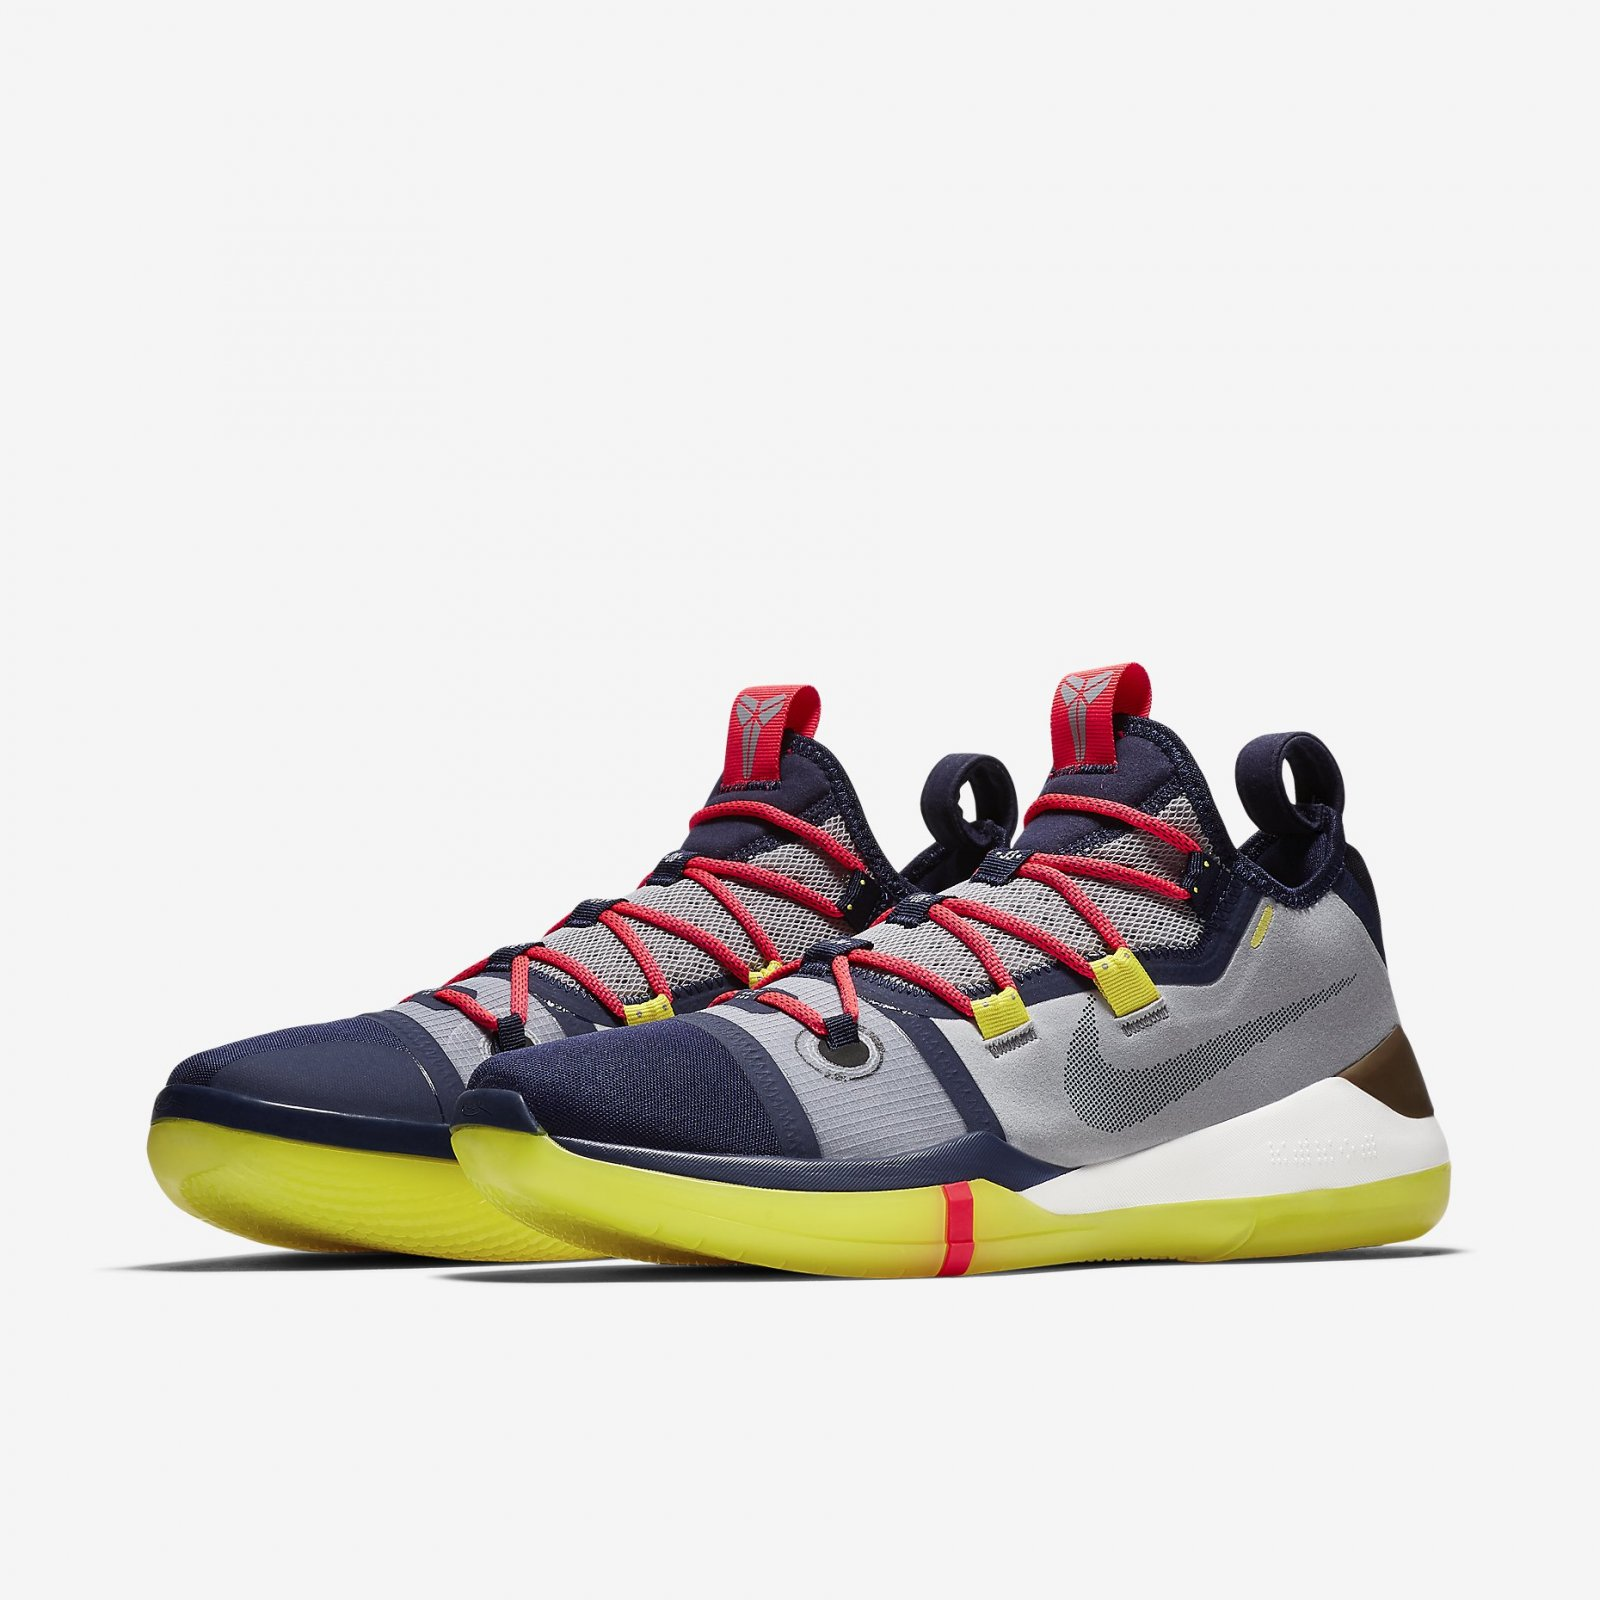 f07d6abf478 Nike Kobe AD EP Sail Multi-Color Mamba Day Men s Basketball Shoes ...